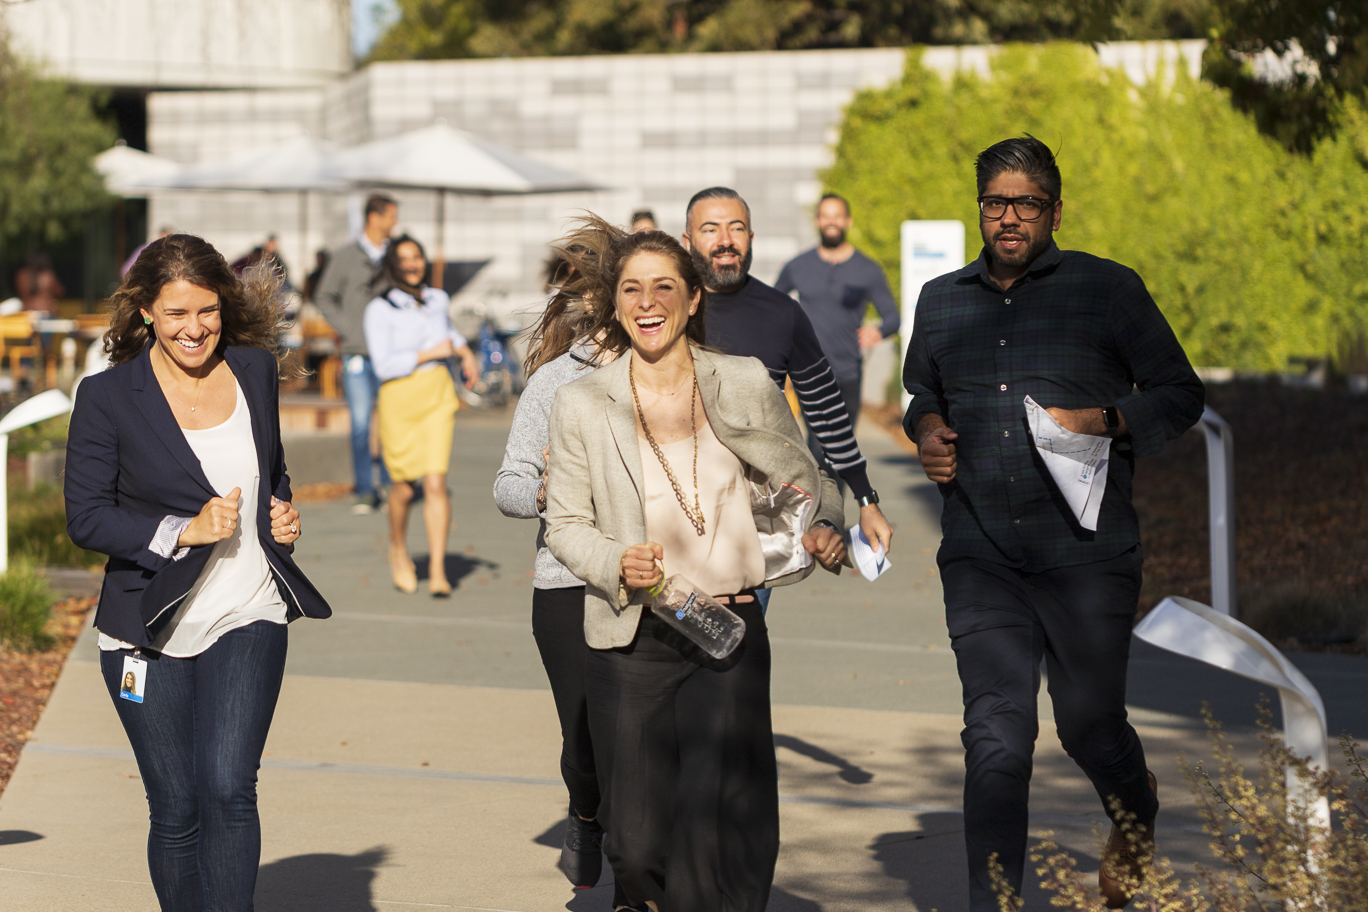 ON CAMPUS - AMAZING RACE MEETS LEADERSHIP COACHING